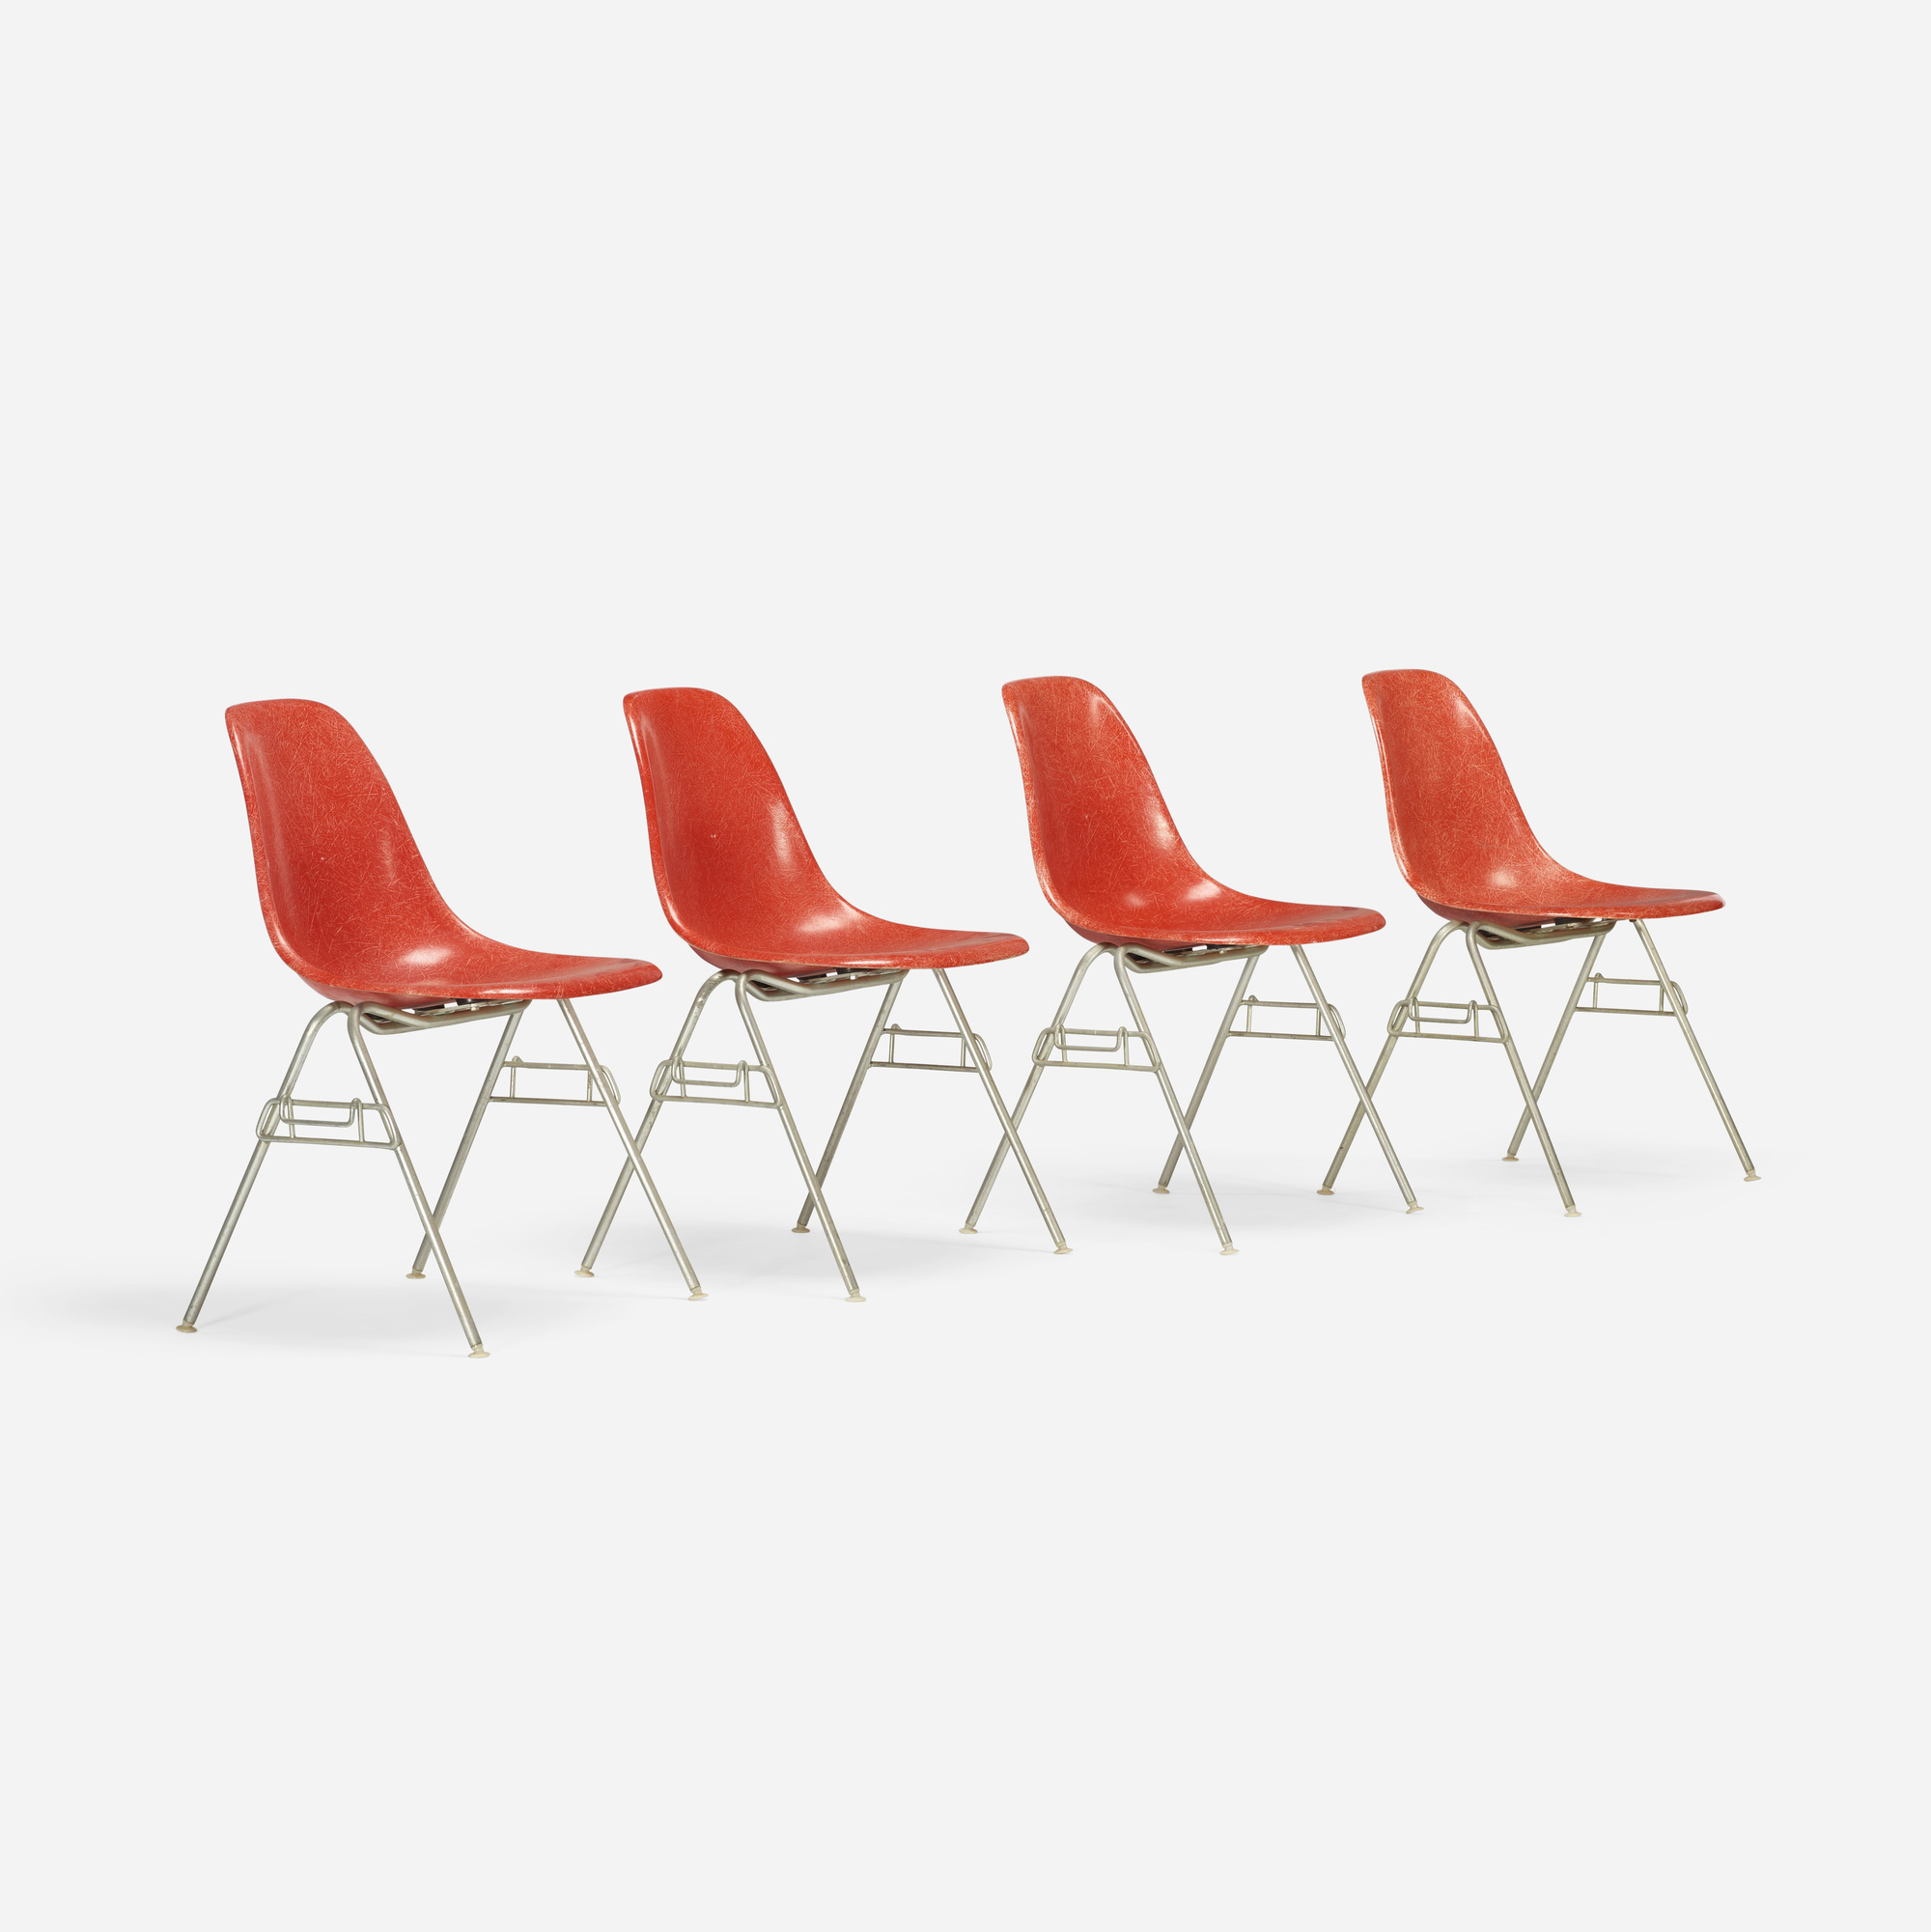 261: Charles and Ray Eames / DSSs, set of four (1 of 2)